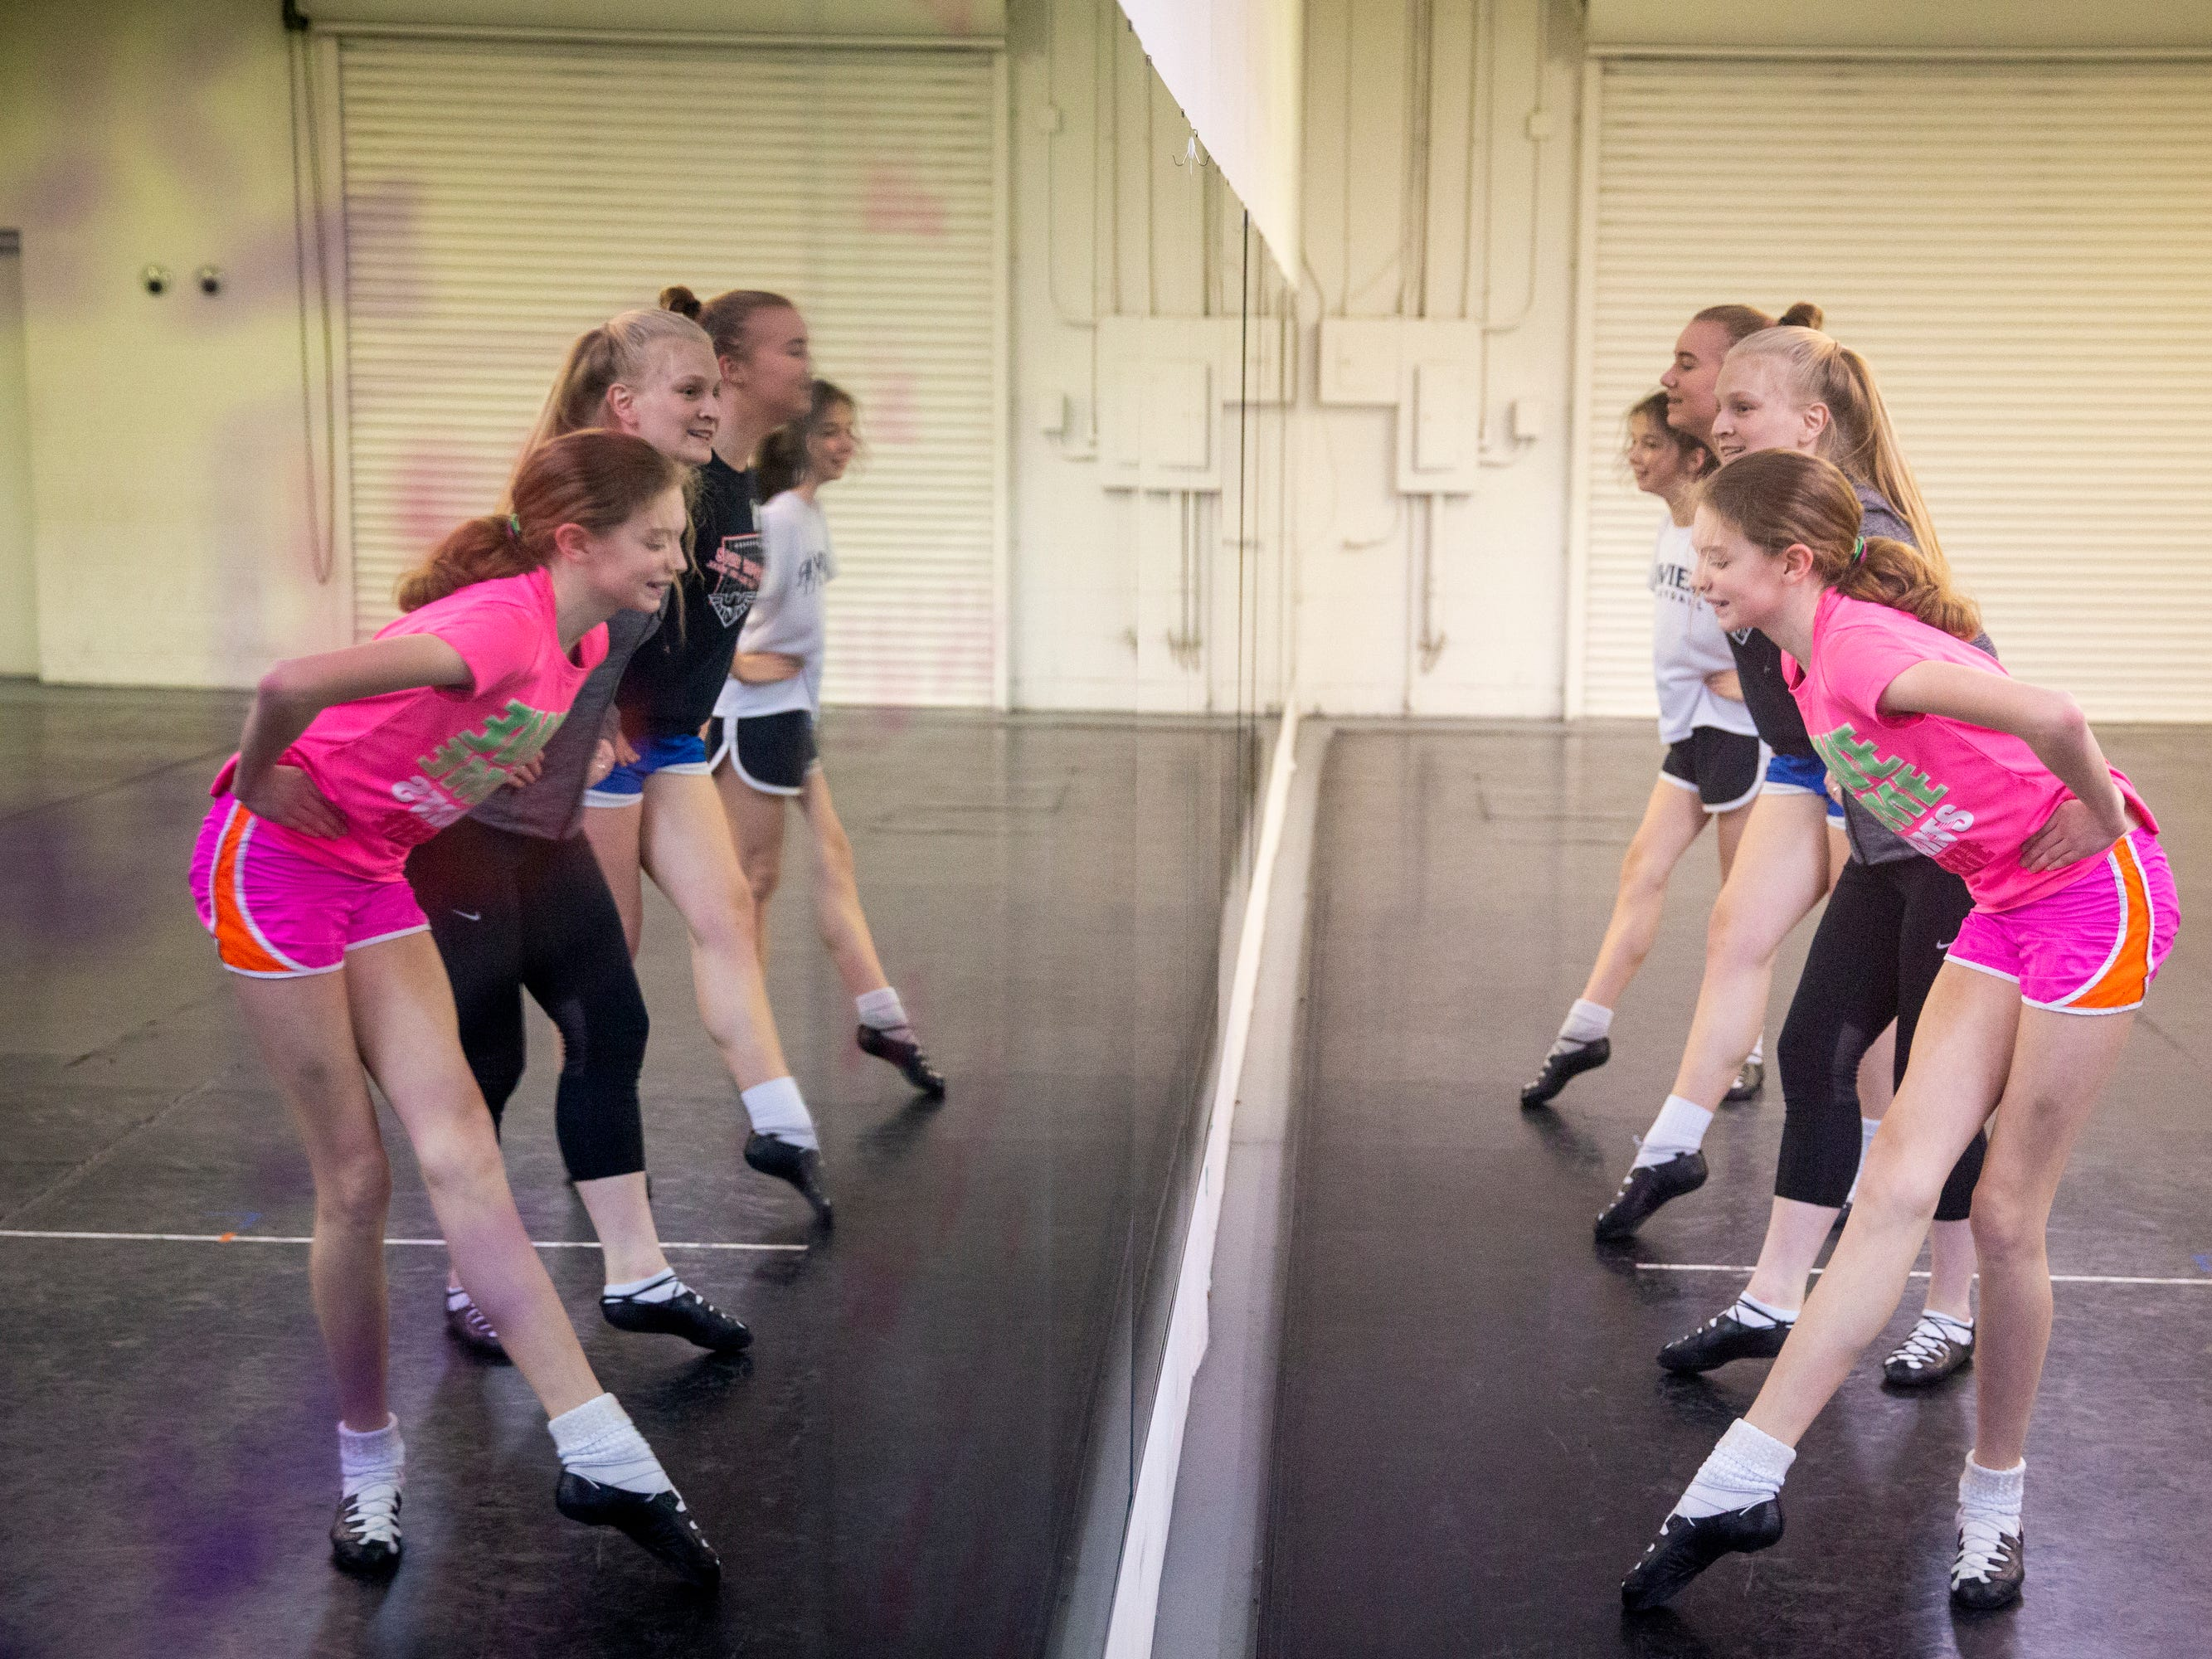 The Erickson Academy Irish dancers practice for the 2019 Cincinnati St. Patrick's Day Parade Thursday, March 14, 2019 at their studio in Linwood.